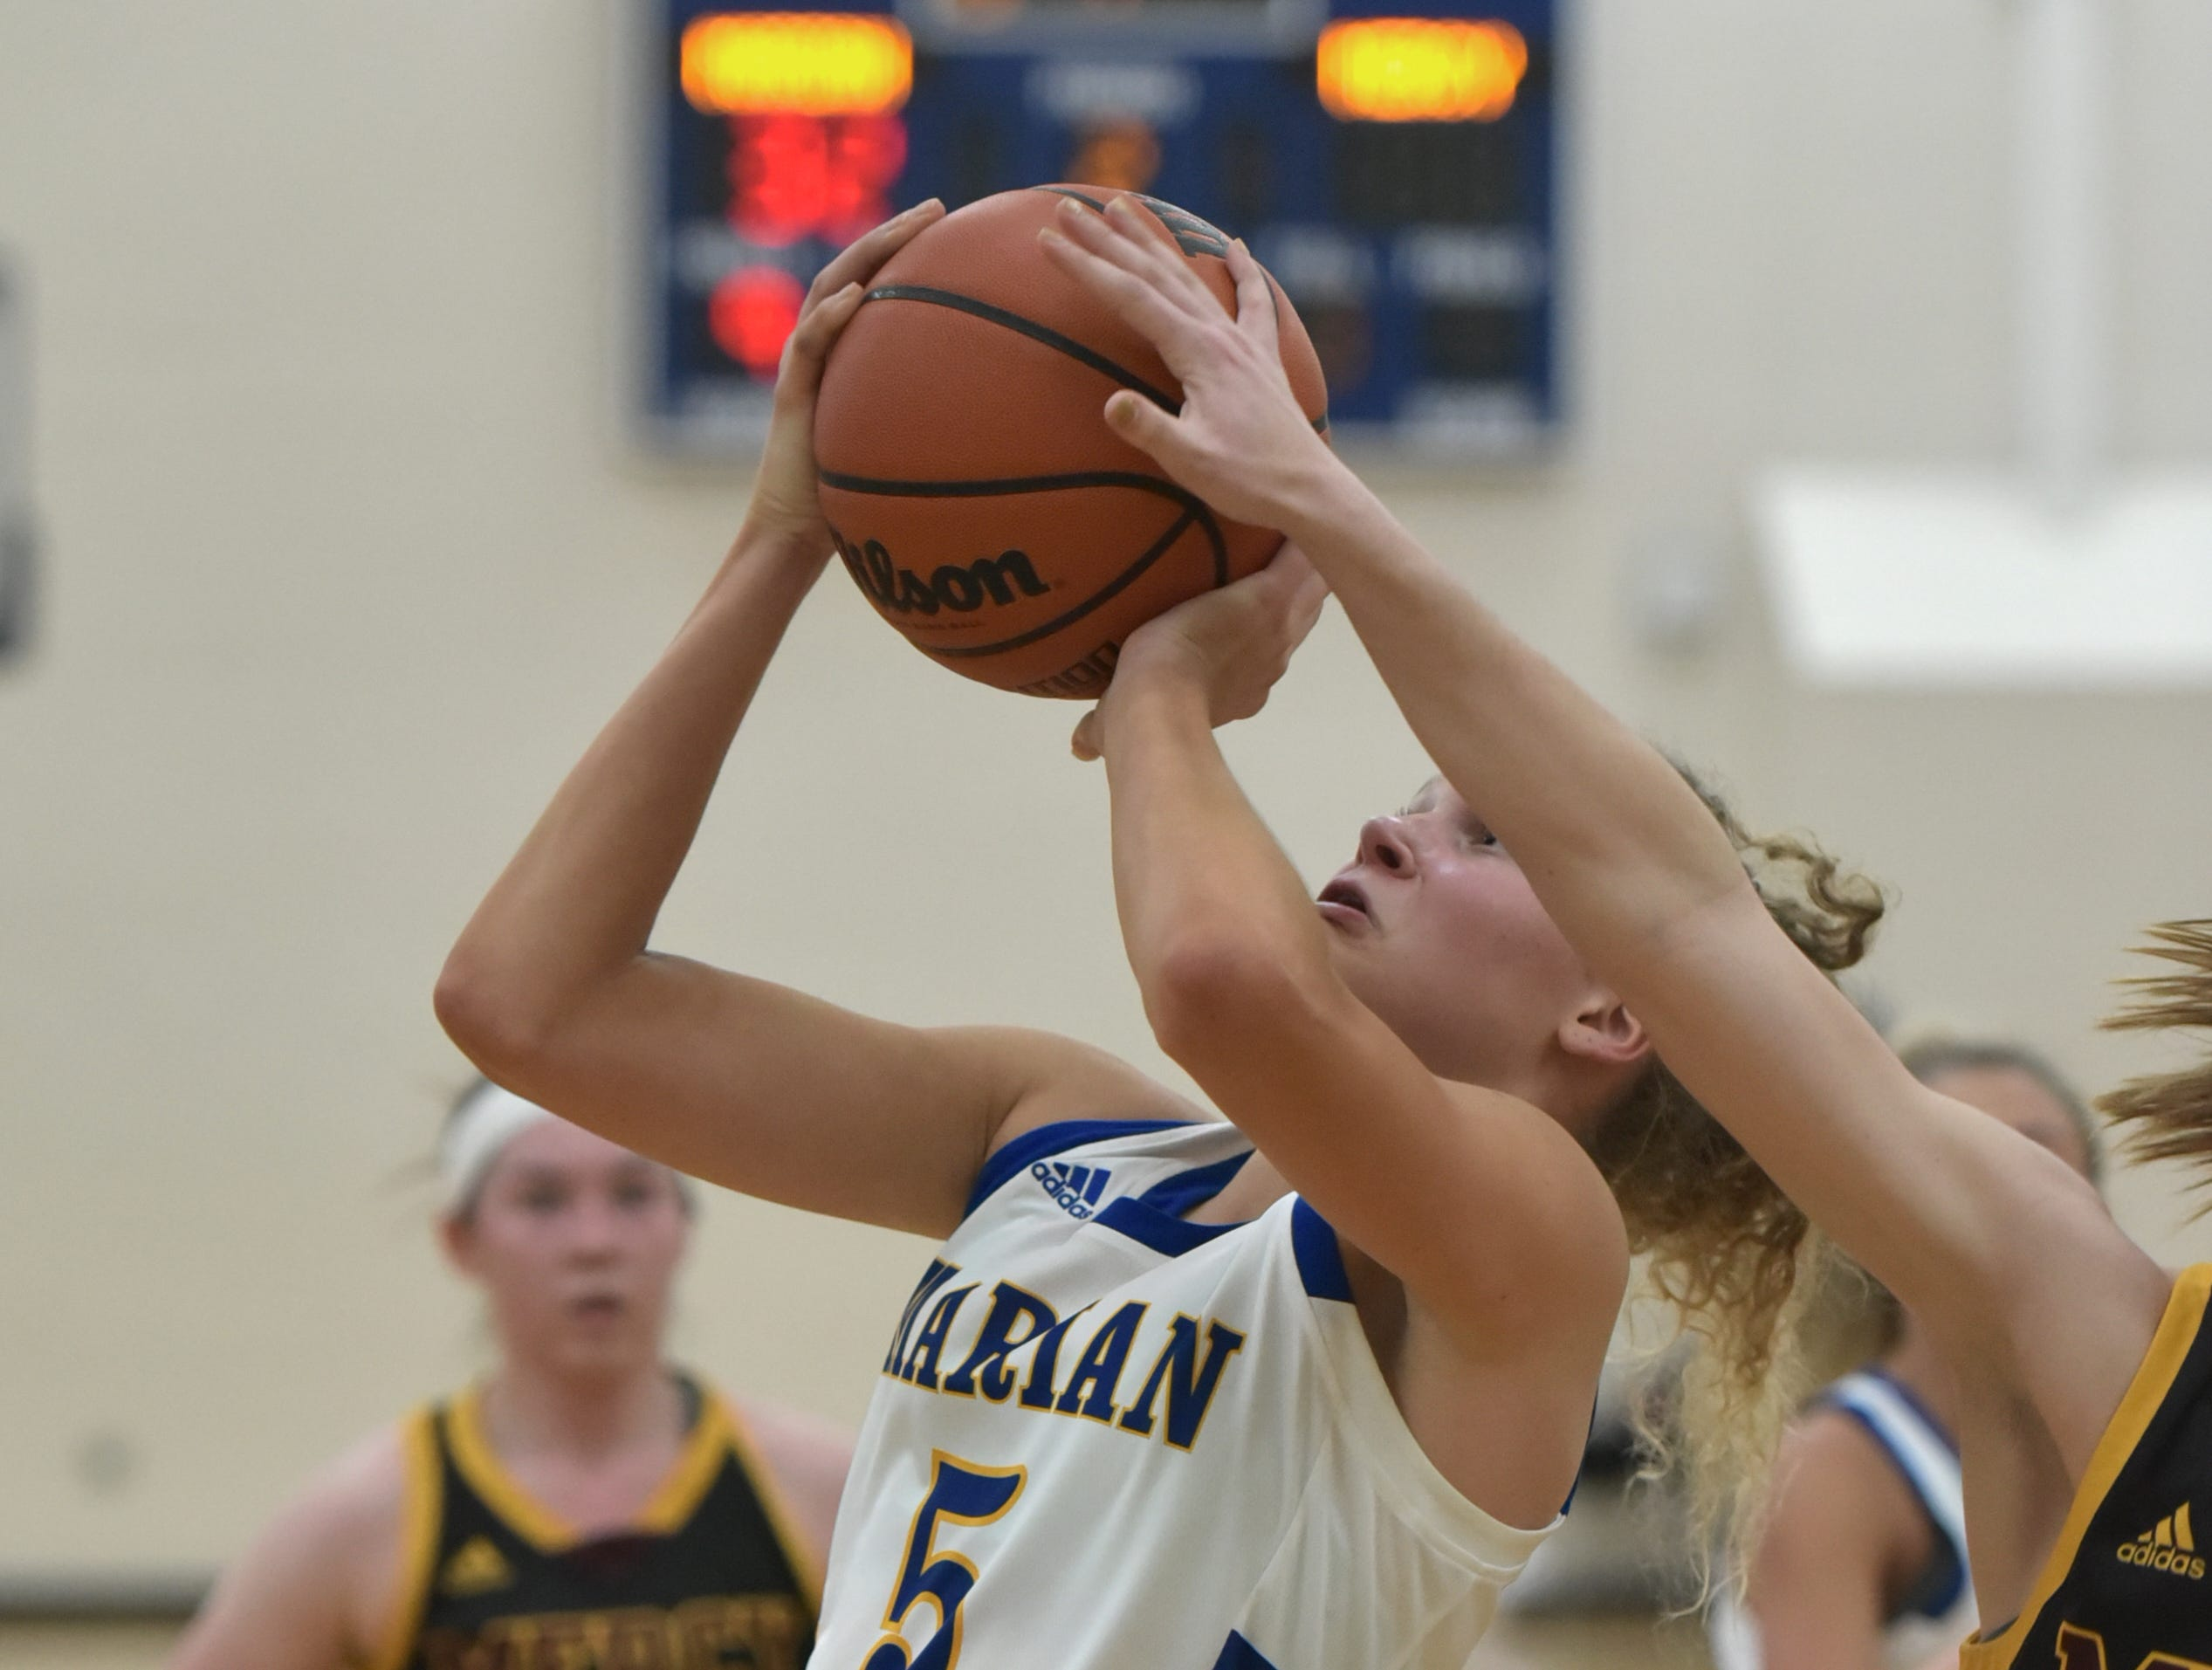 Marian High's Megan Kraus gets a shot blocked from behind by a Mercy High player during the teams' Jan. 19 game in West Bloomfield.